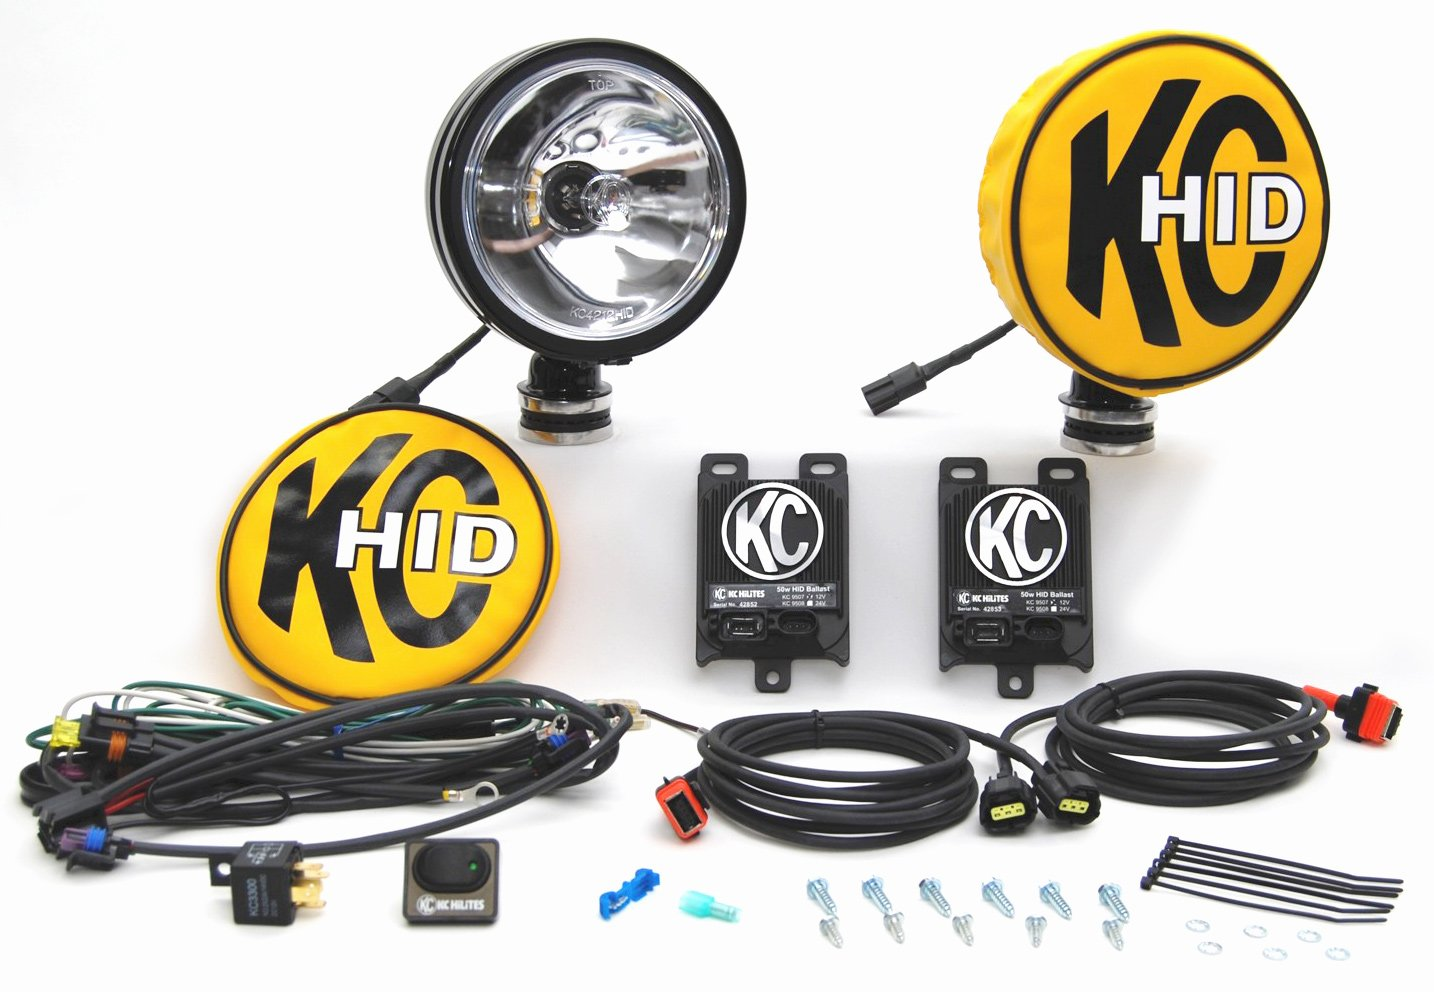 KC Hilites HID DayLighter Long Range Light Kit on tc wiring harness, jk wiring harness, gm wiring harness, ac wiring harness, hd wiring harness, gt wiring harness, bp wiring harness, bass guitar wiring harness, dc wiring harness, car wiring harness, cj wiring harness, mb wiring harness, cb wiring harness,